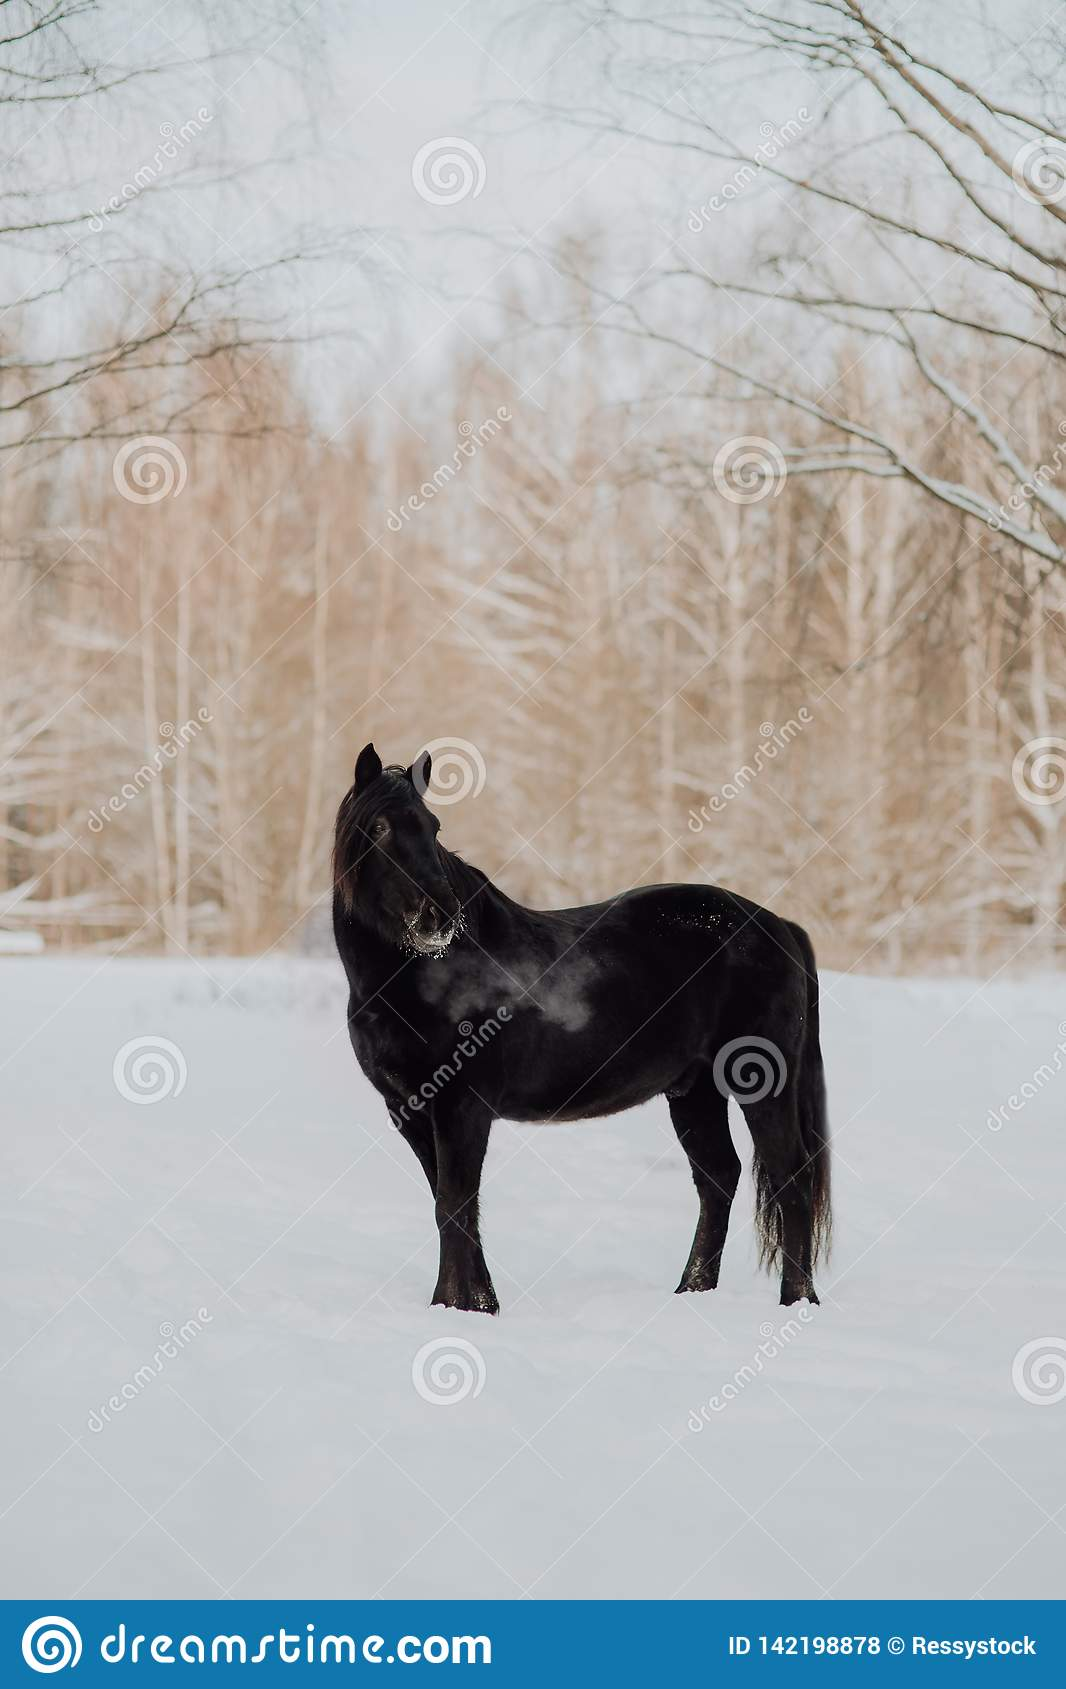 Black Horse Stand In Winter On The White Snow In Forest Stock Photo Image Of Outdoors Amazing 142198878